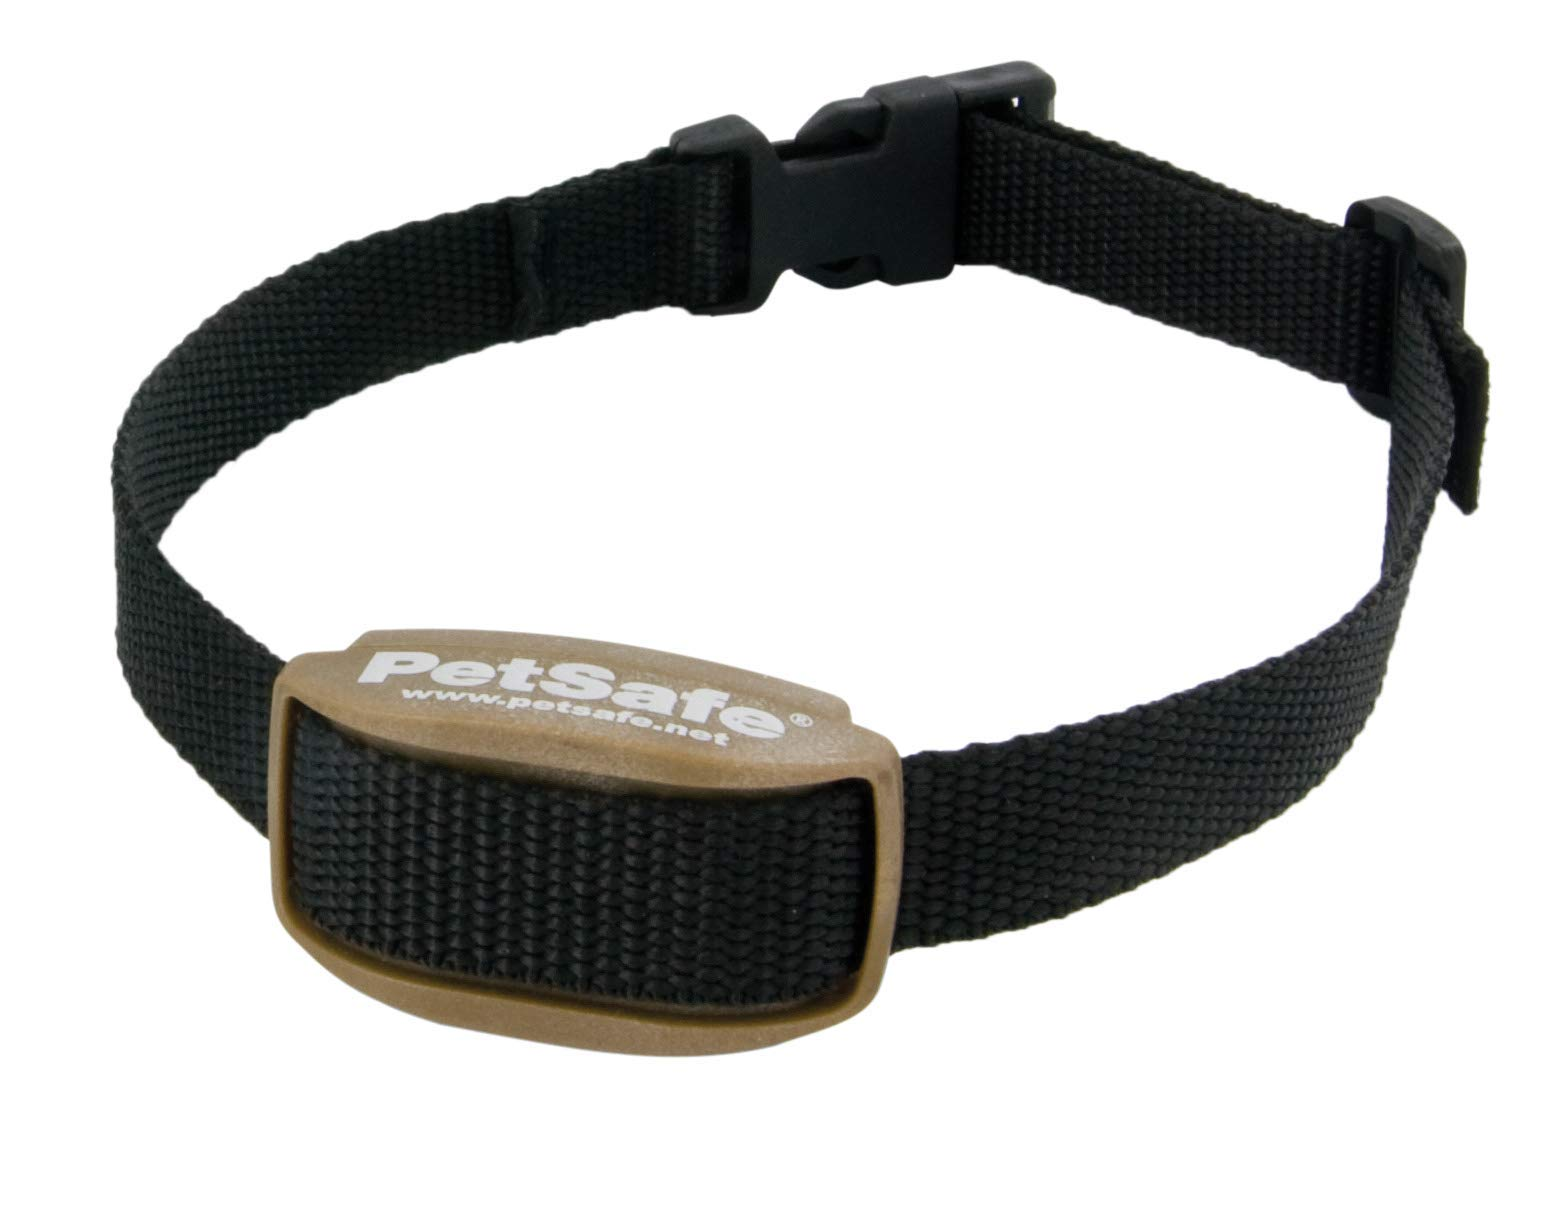 PetSafe Pawz Away Extra Receiver Collar for Pawz Away Pet Barriers for Cats and Dogs over 5 lb., Static Correction, Pet Proofing Collar by PetSafe